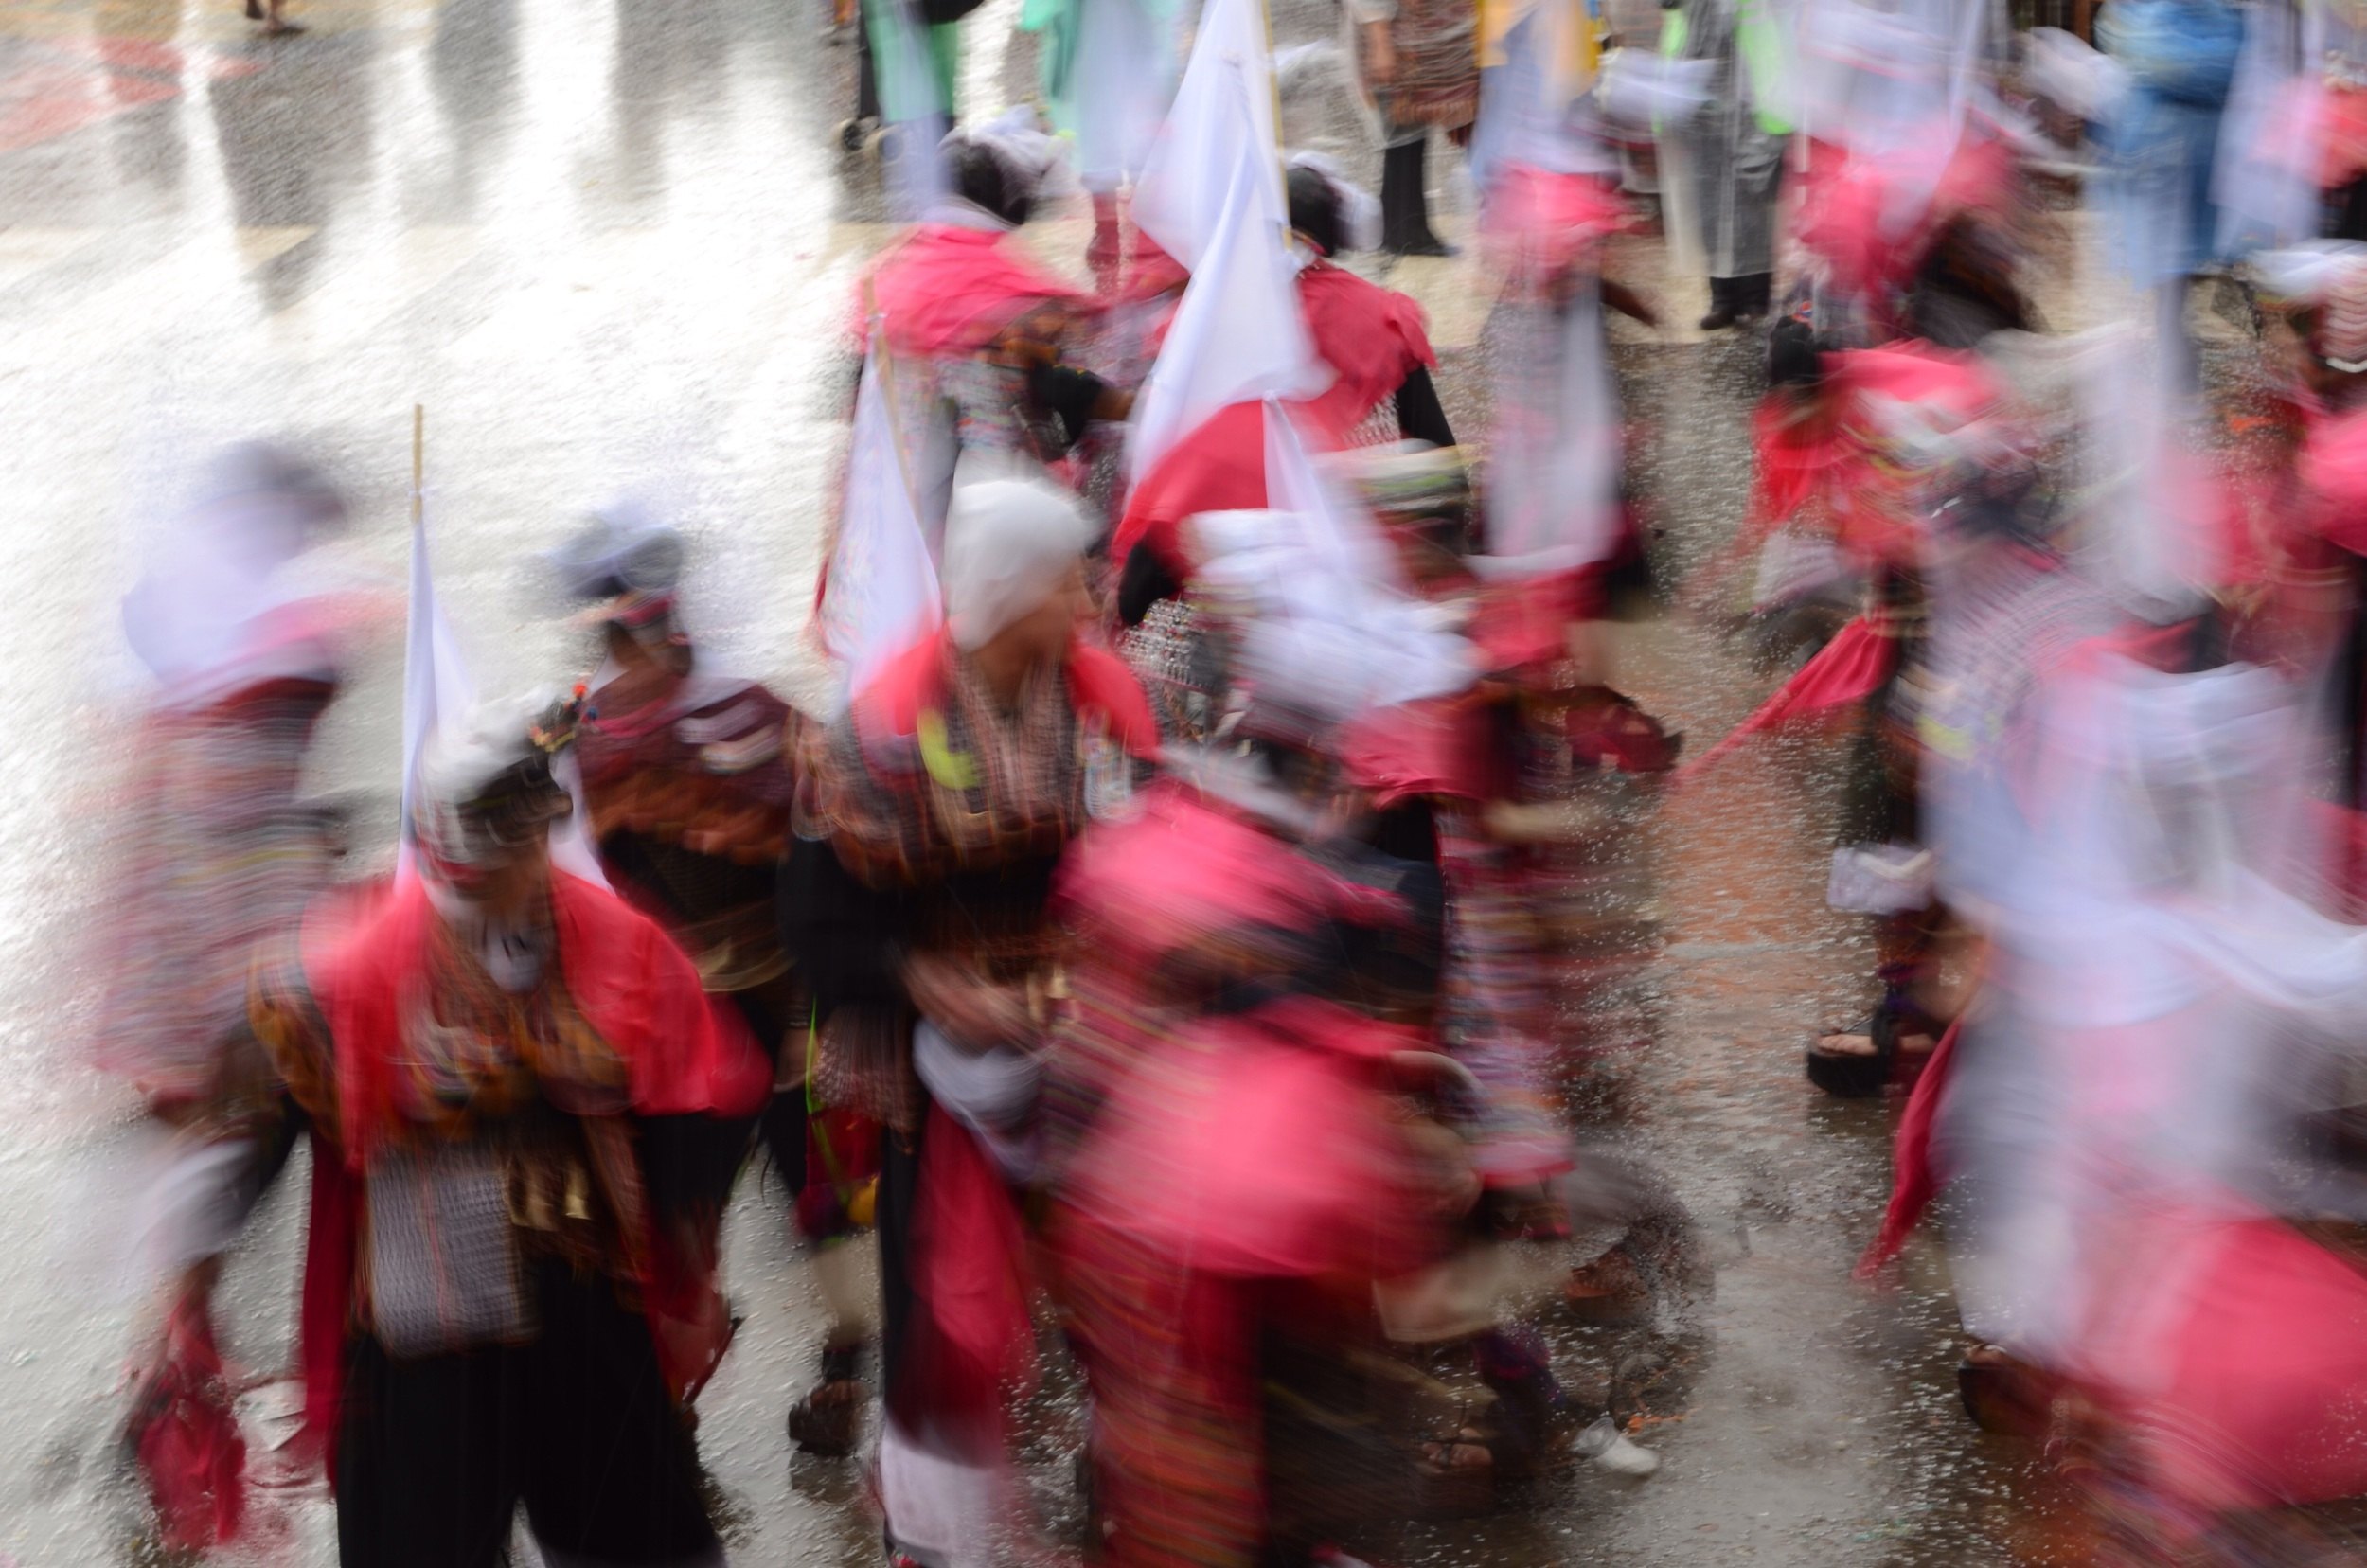 Movement of dancers caught in the rain // 15 february 2015